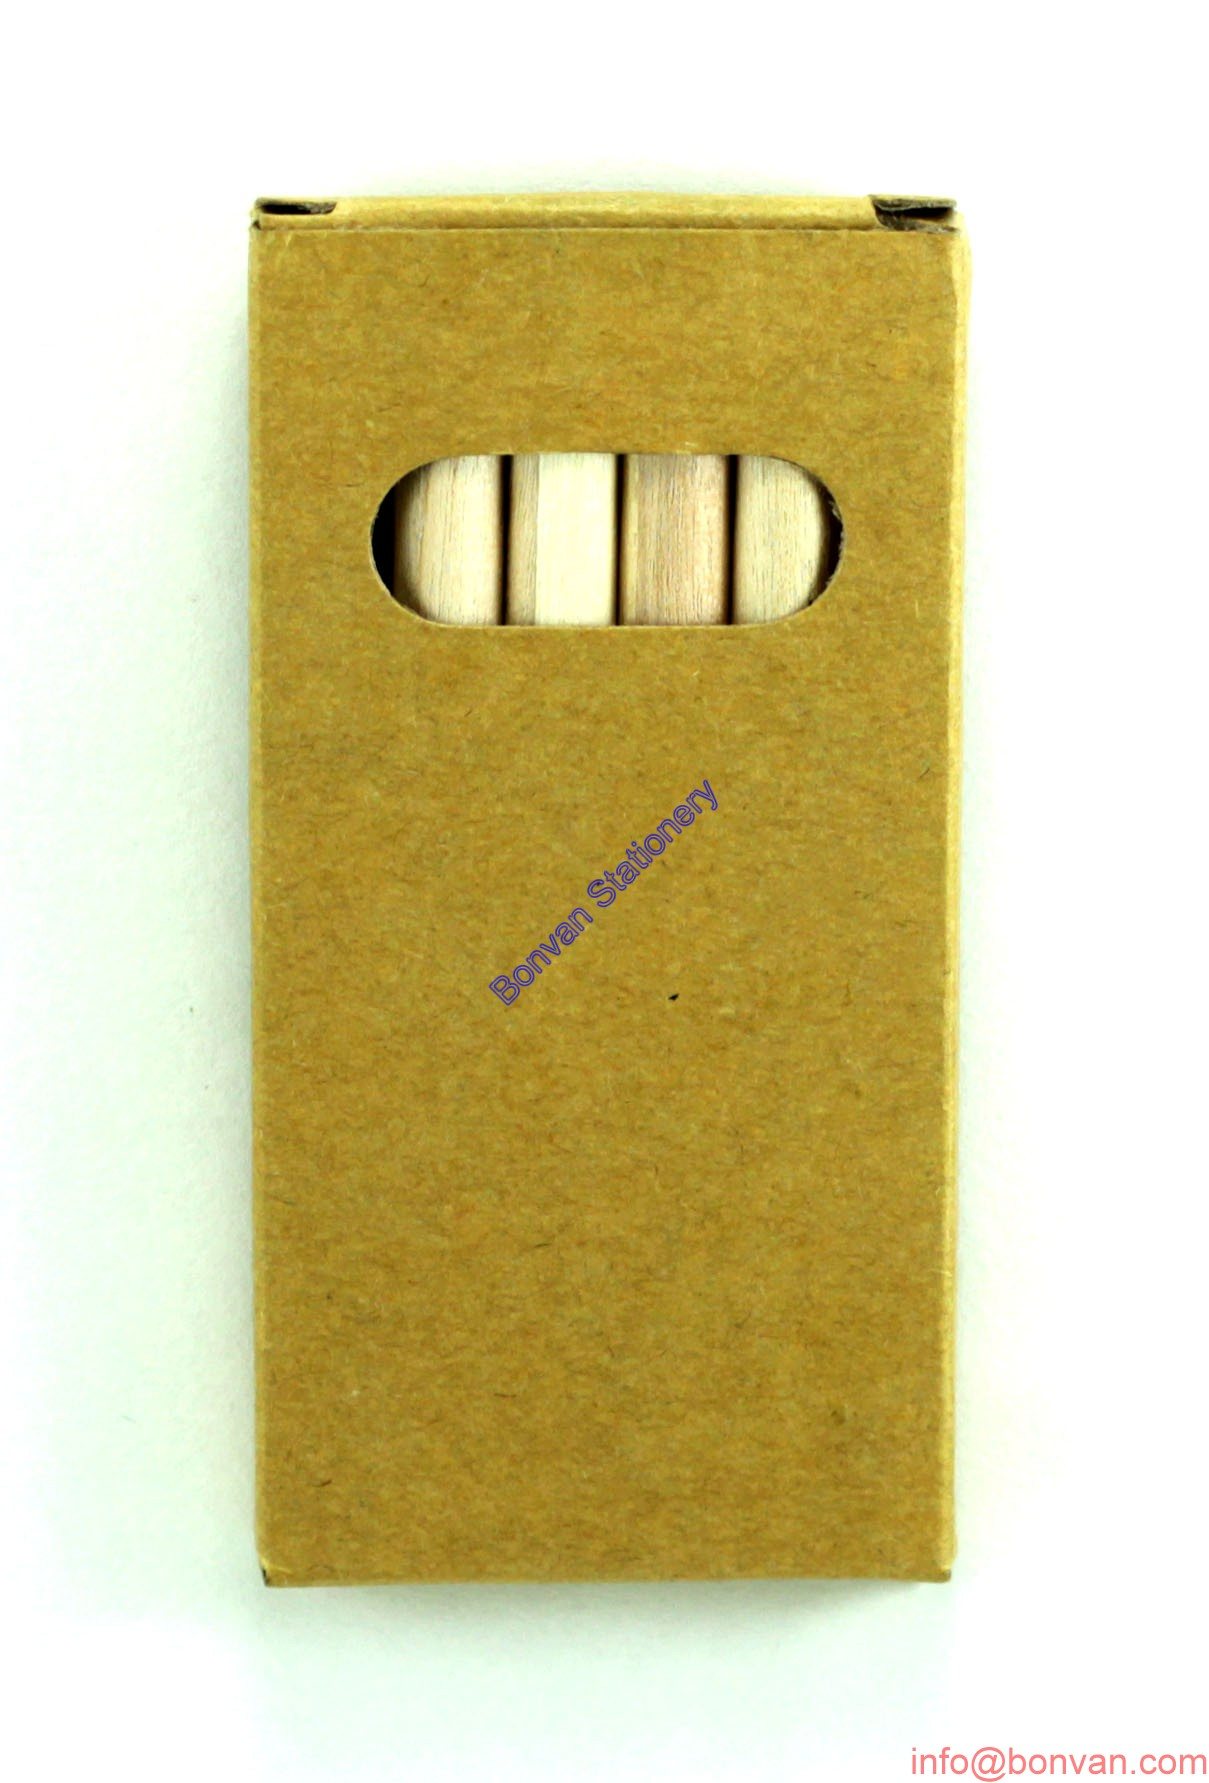 boxed packed wooden pencil,wood pencil